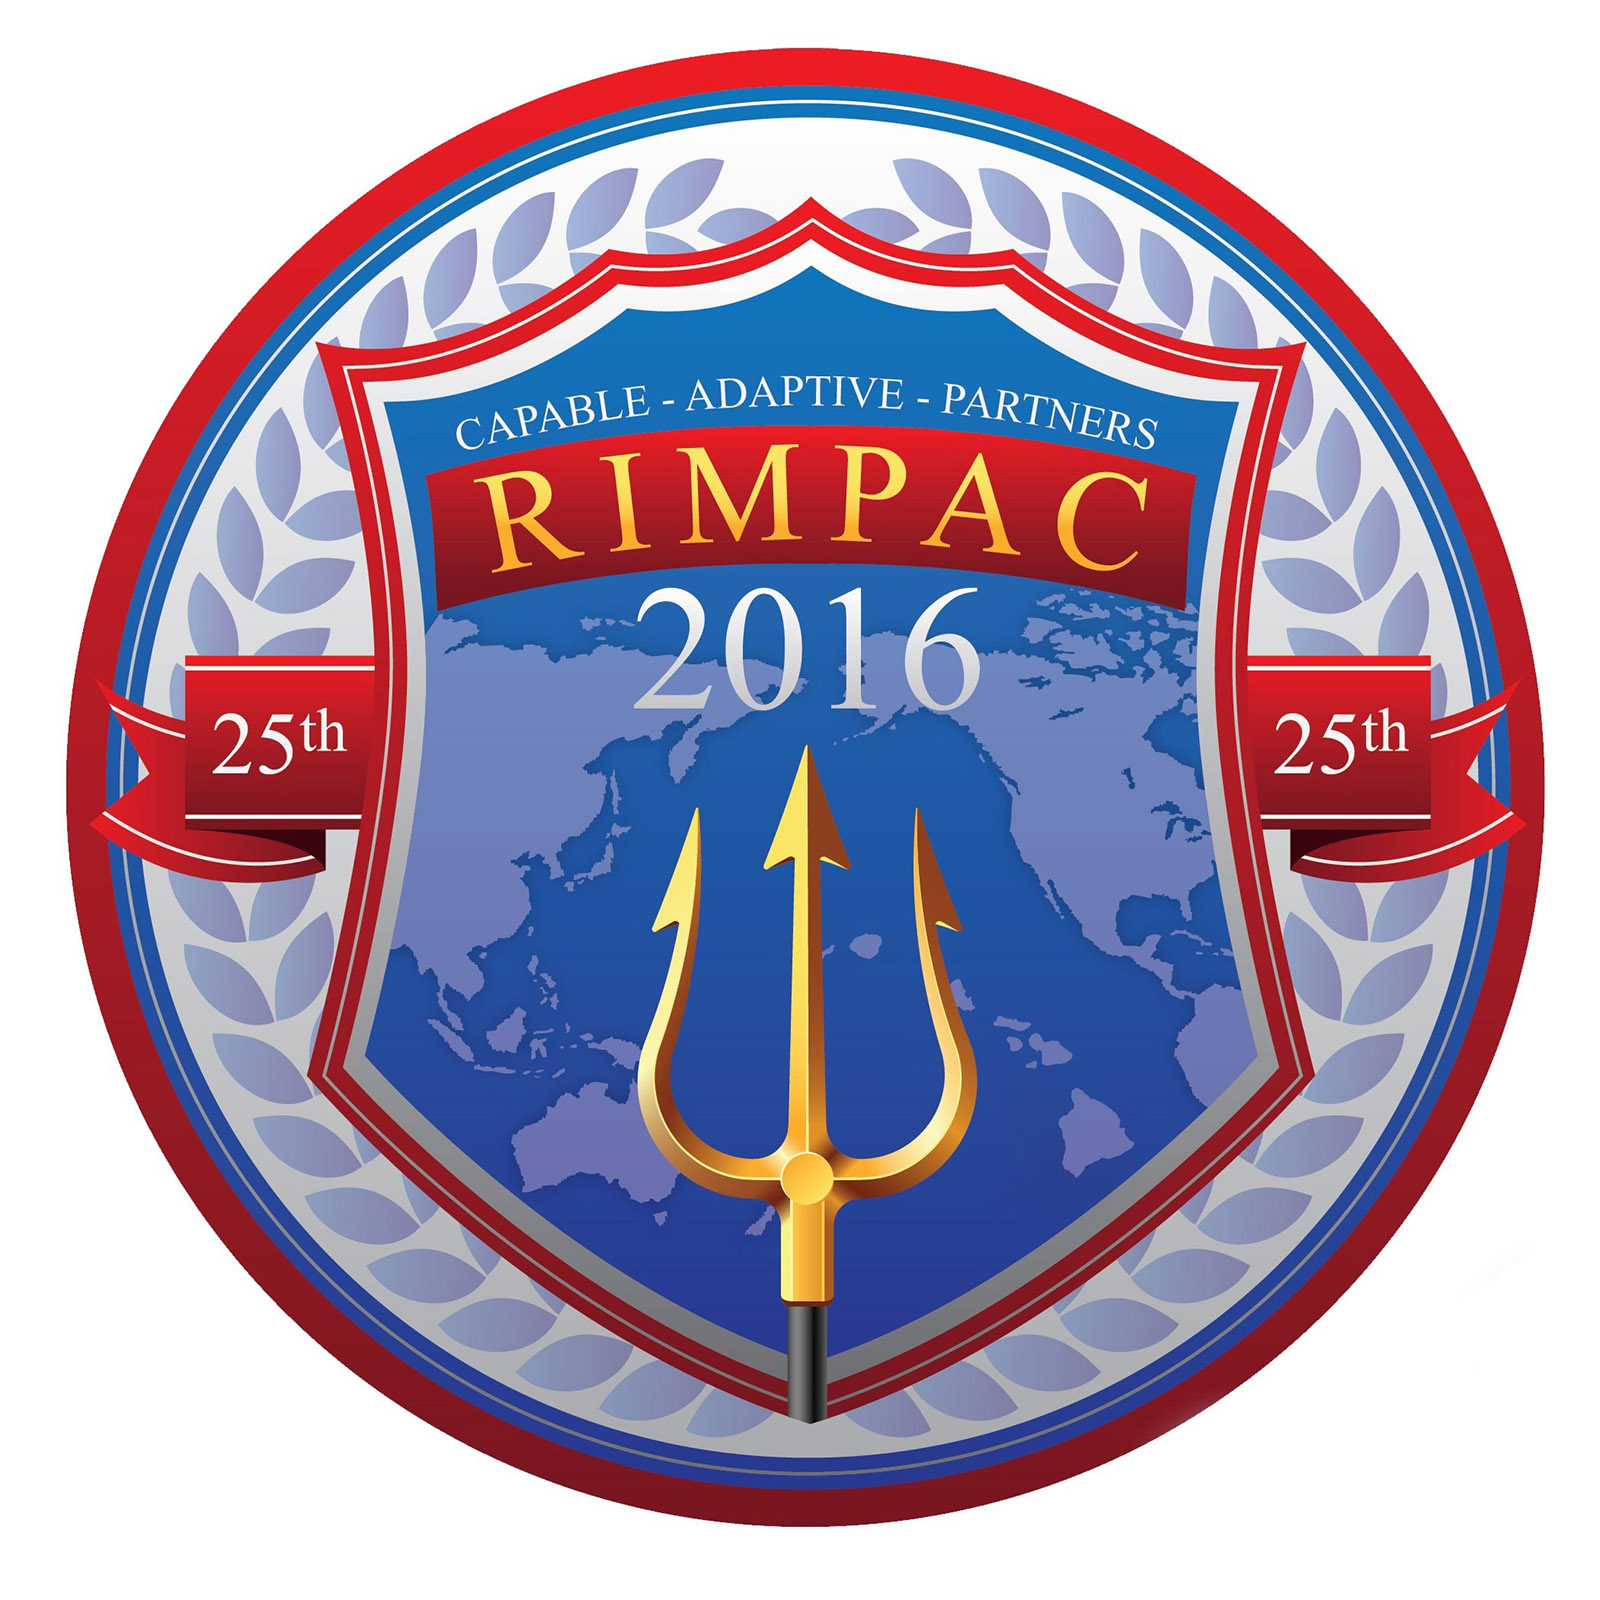 The RIMPAC logo used for the 2016 exercise.